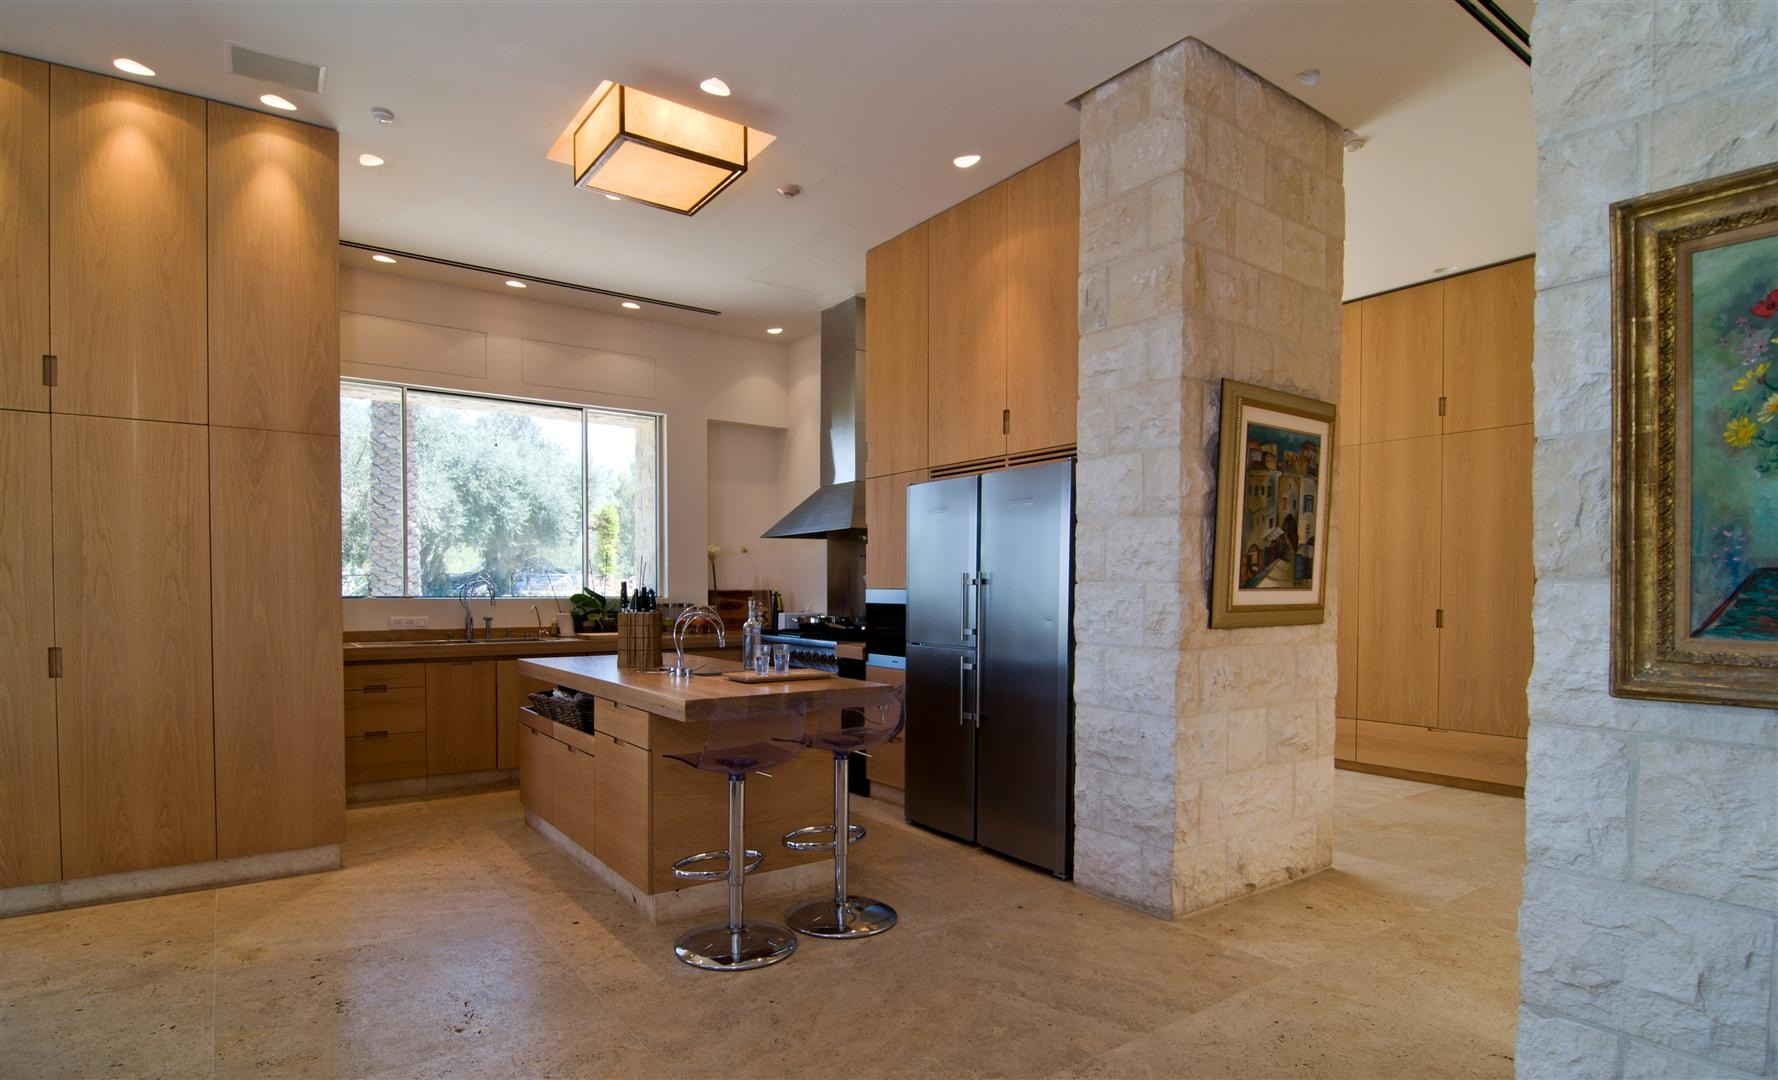 Kitchen Island, Breakfast Bar, Contemporary Stone House in Jerusalem, Israel